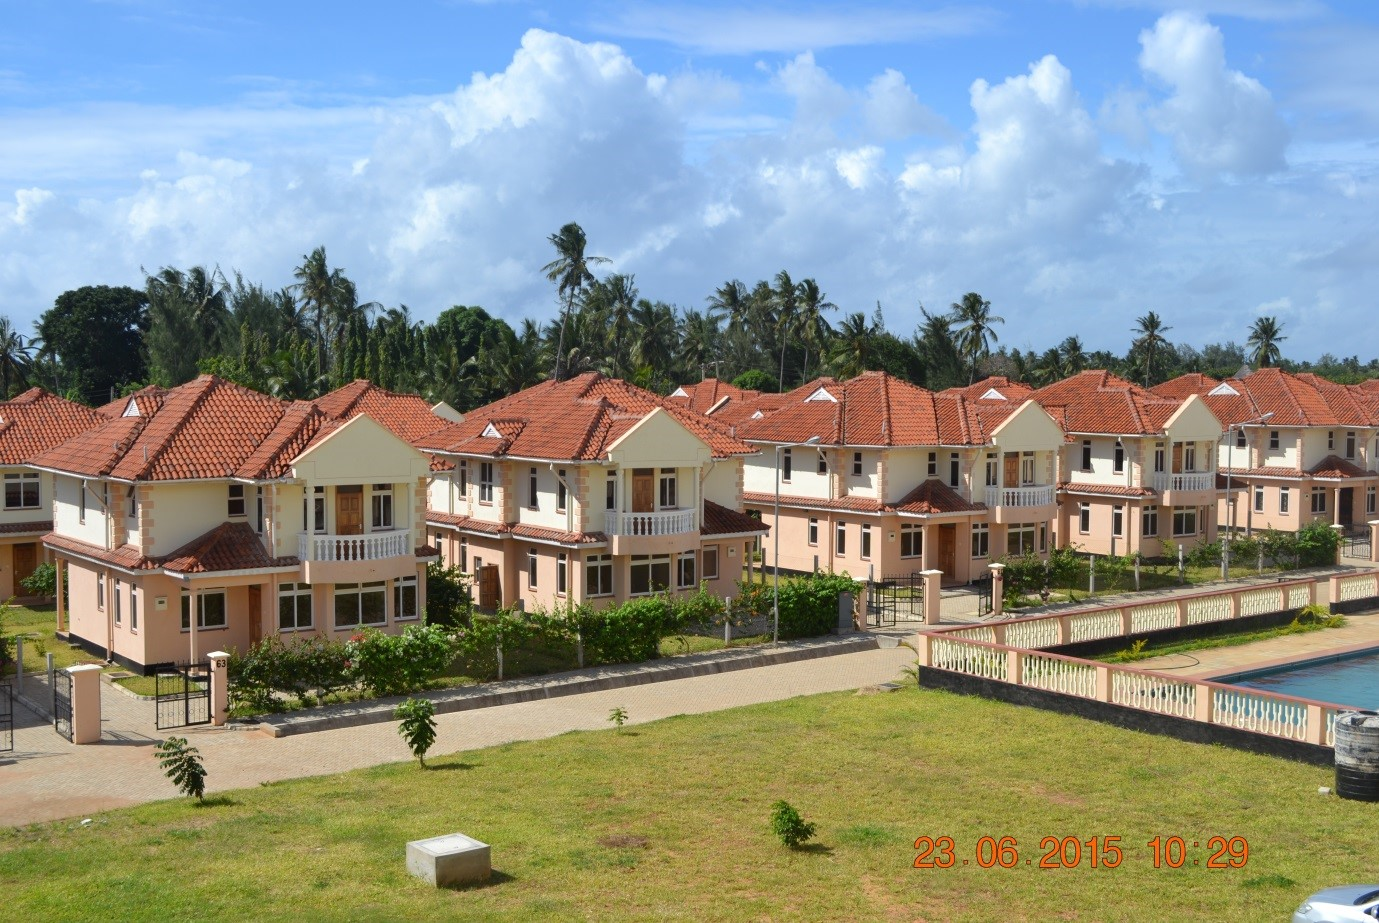 Mtwapa Gardens Maisonette and bungalow